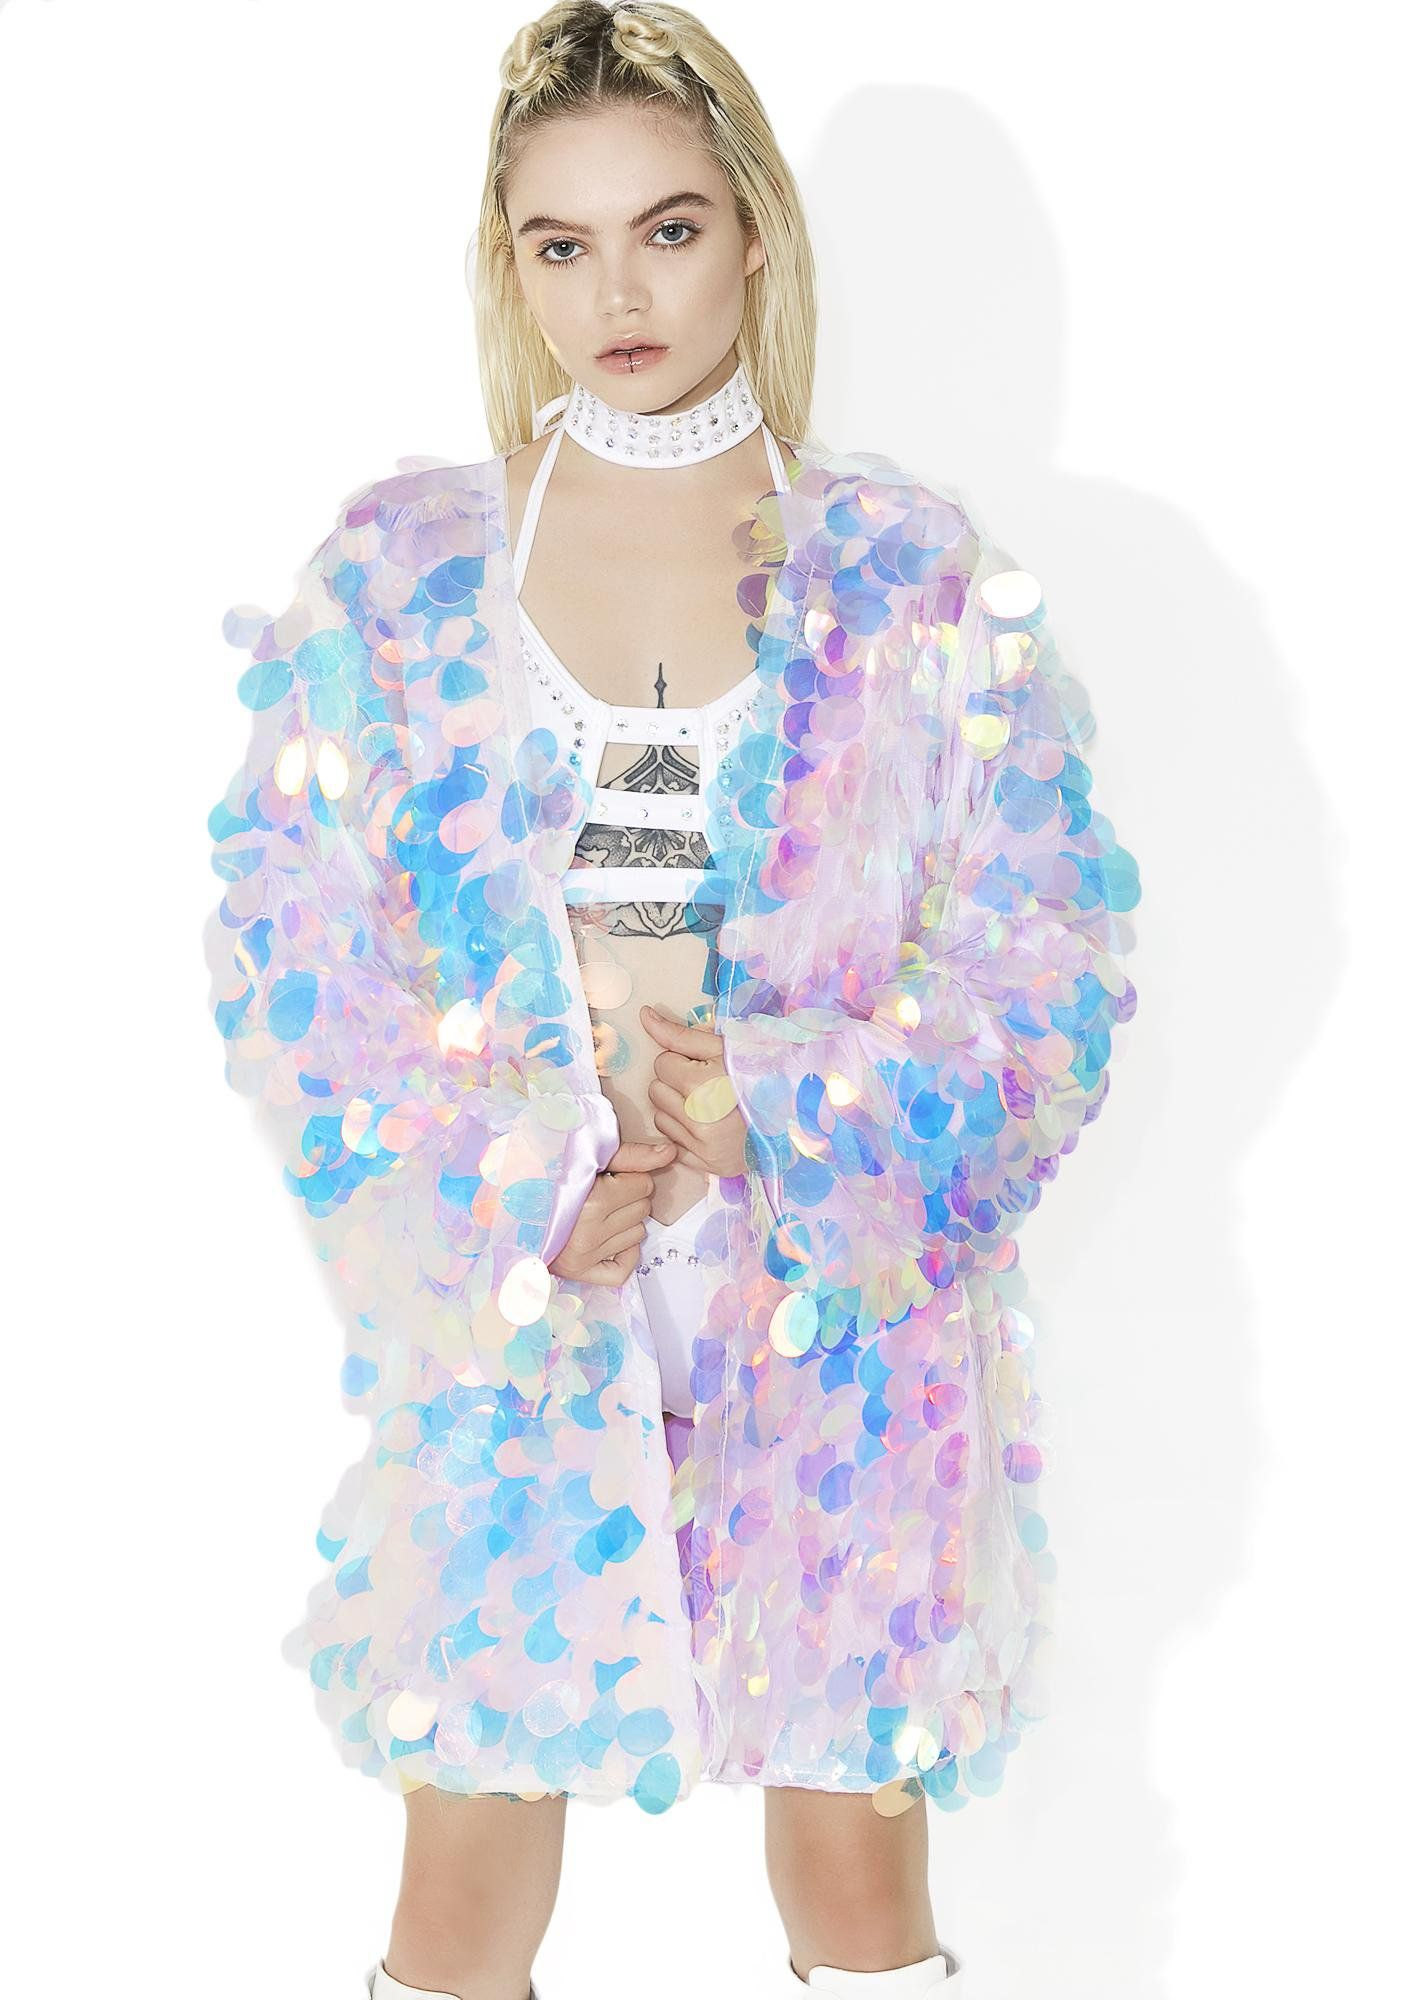 66cb9ddaec This amazing handmade kimono features a supa sparkly N' shiny iridescent pink  sequin construction, satiny light pink inner lining, ...